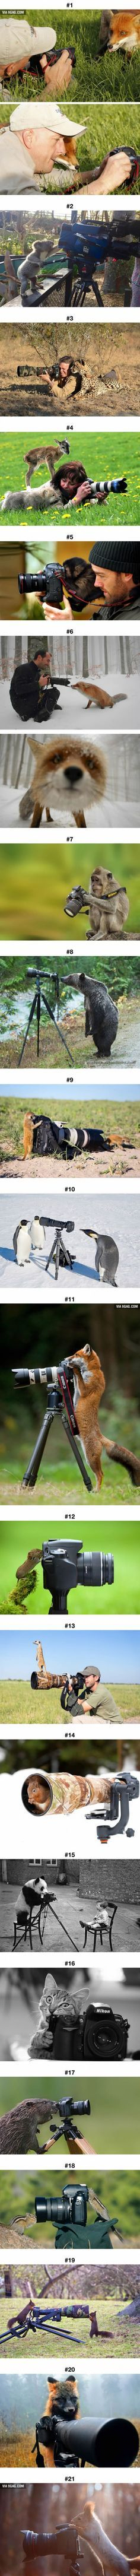 Animals that want to become wildlife/nature photographers, and they look adorable when doing it alongside humans.